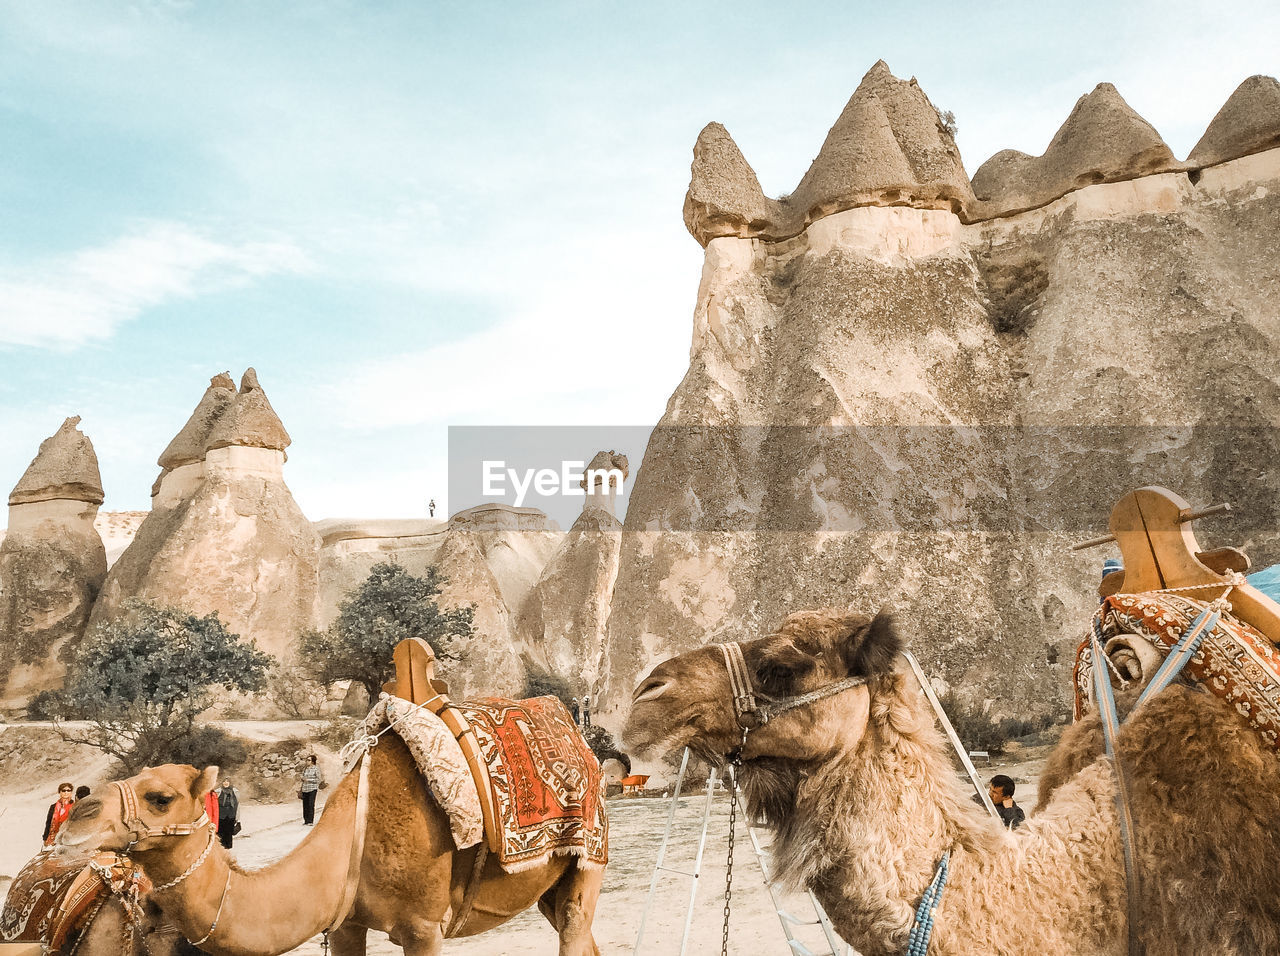 mammal, animal themes, animal, pets, camel, domestic animals, working animal, domestic, sky, group of animals, vertebrate, rock, nature, day, rock - object, livestock, desert, rock formation, solid, outdoors, herbivorous, animal head, arid climate, climate